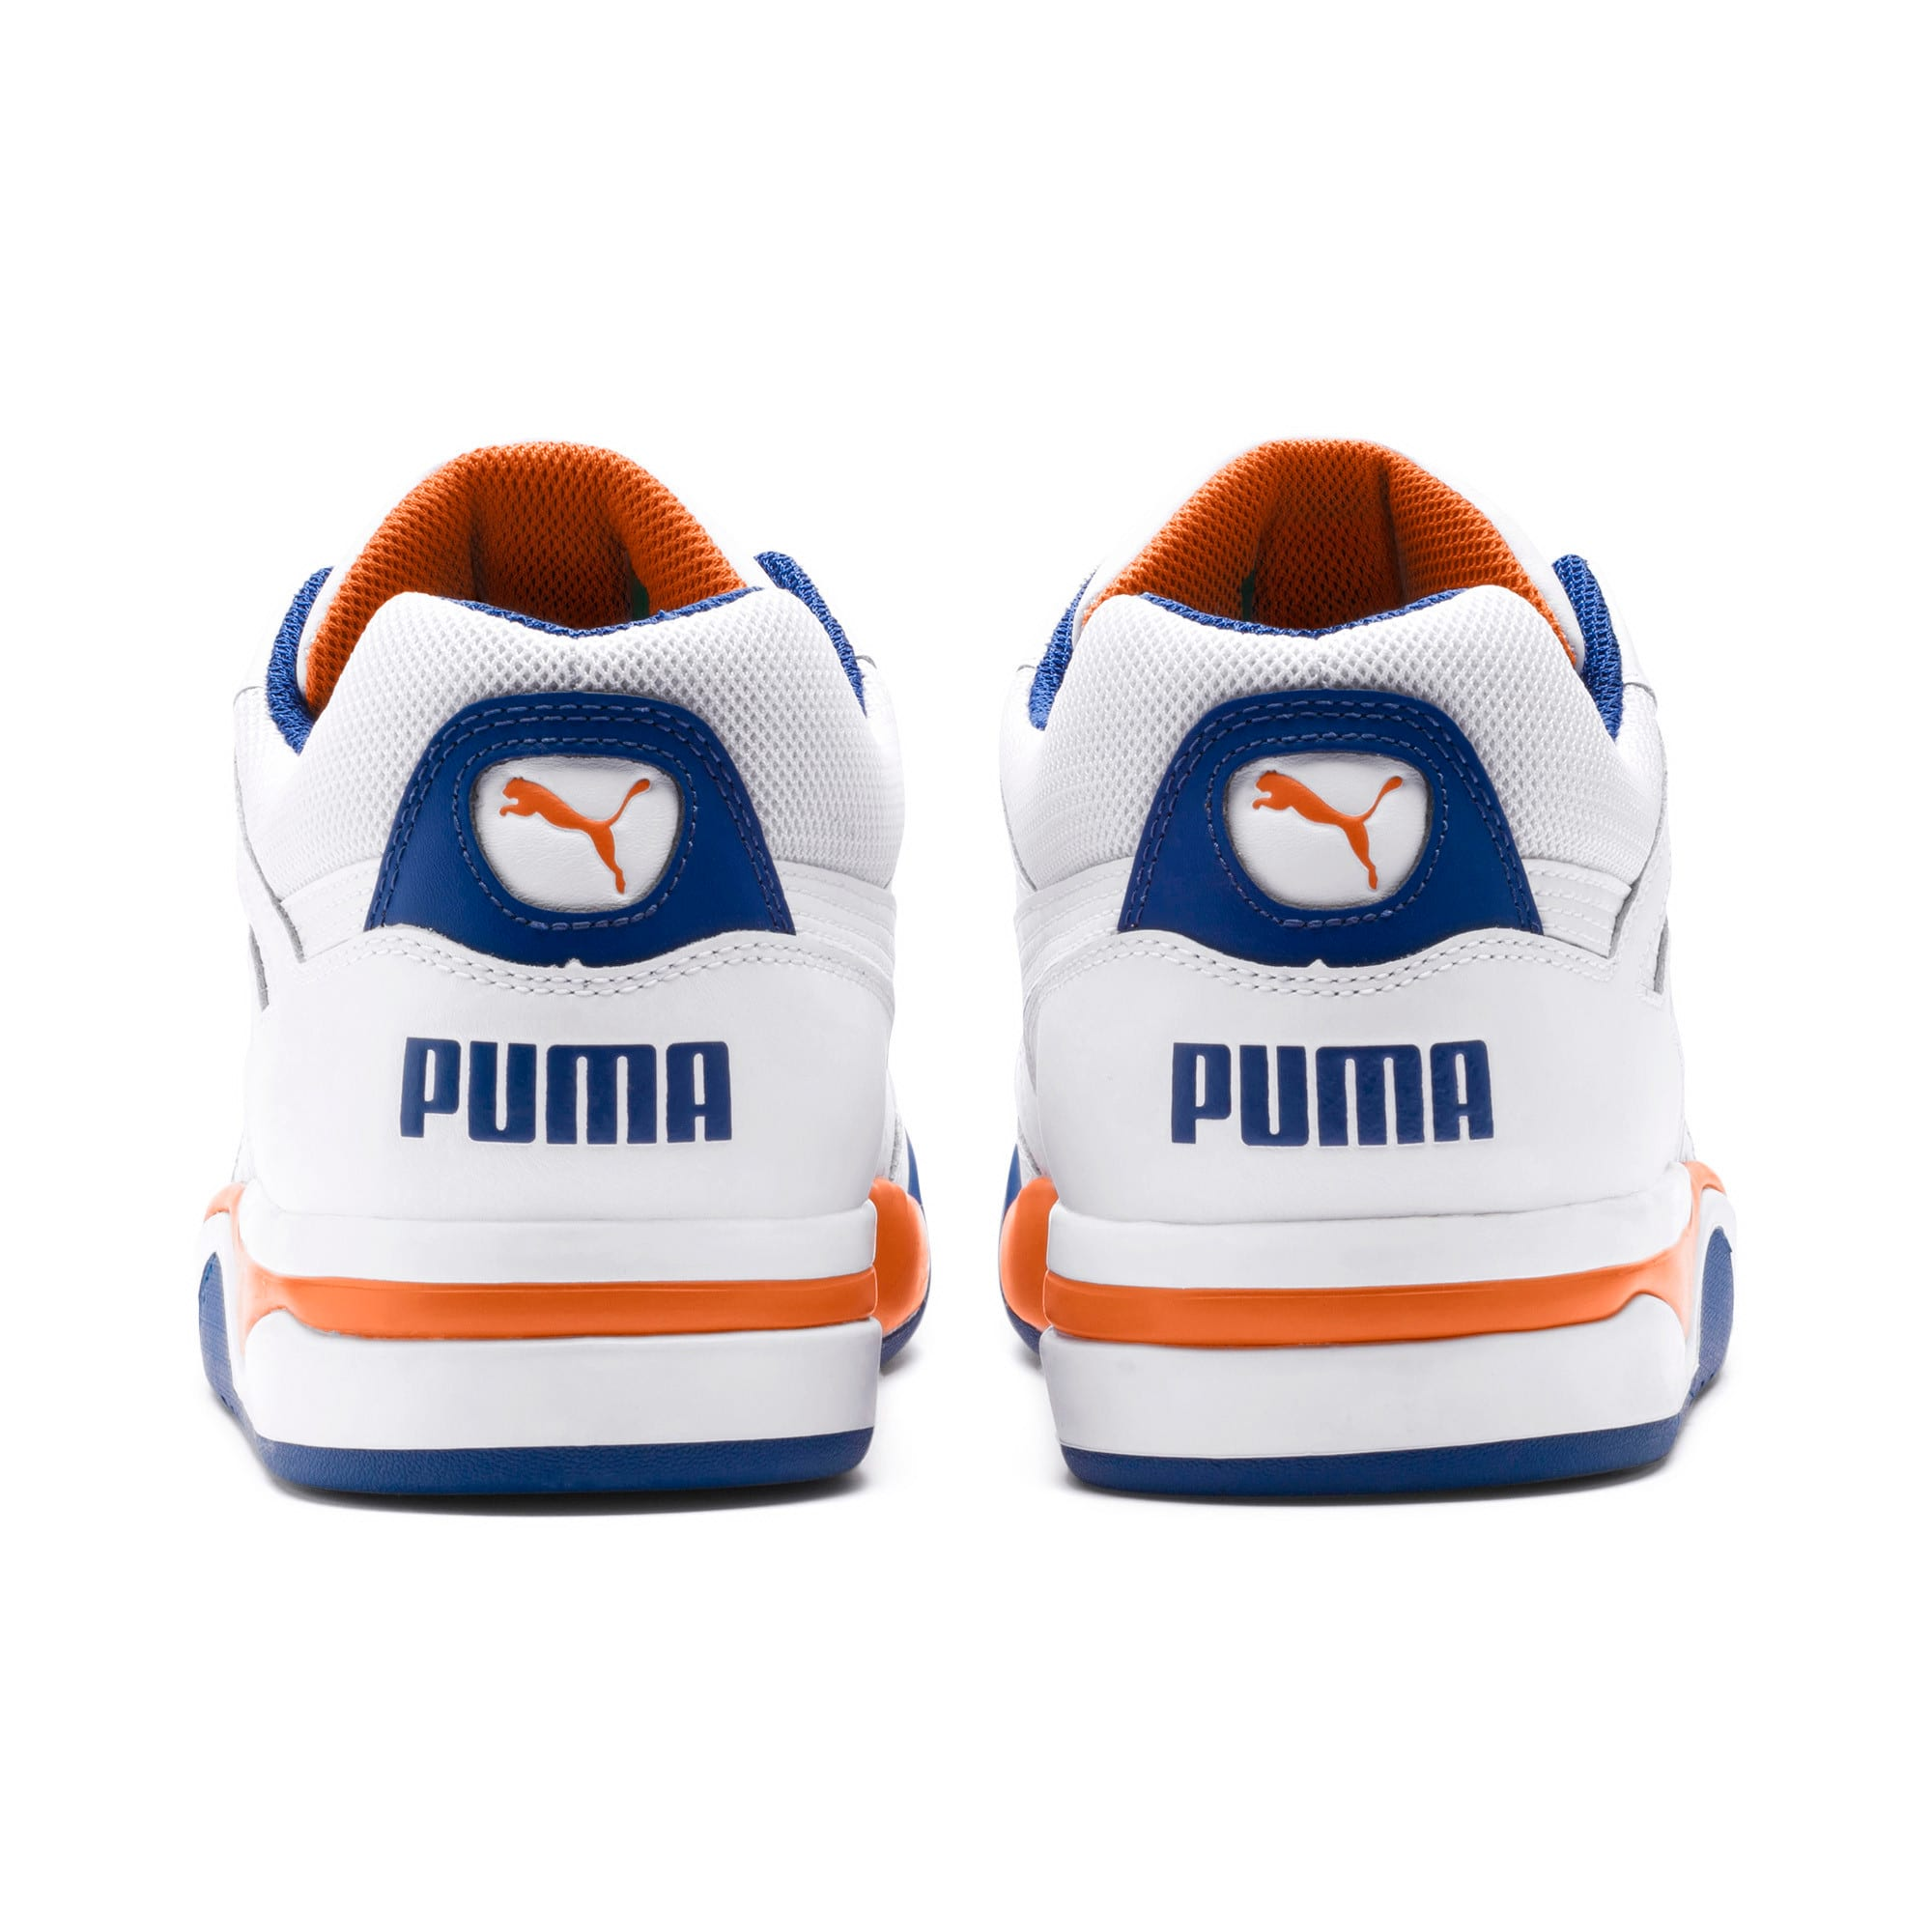 Thumbnail 3 of Palace Guard Men's Basketball Trainers, P White-Jaffa Orange-G Blue, medium-IND